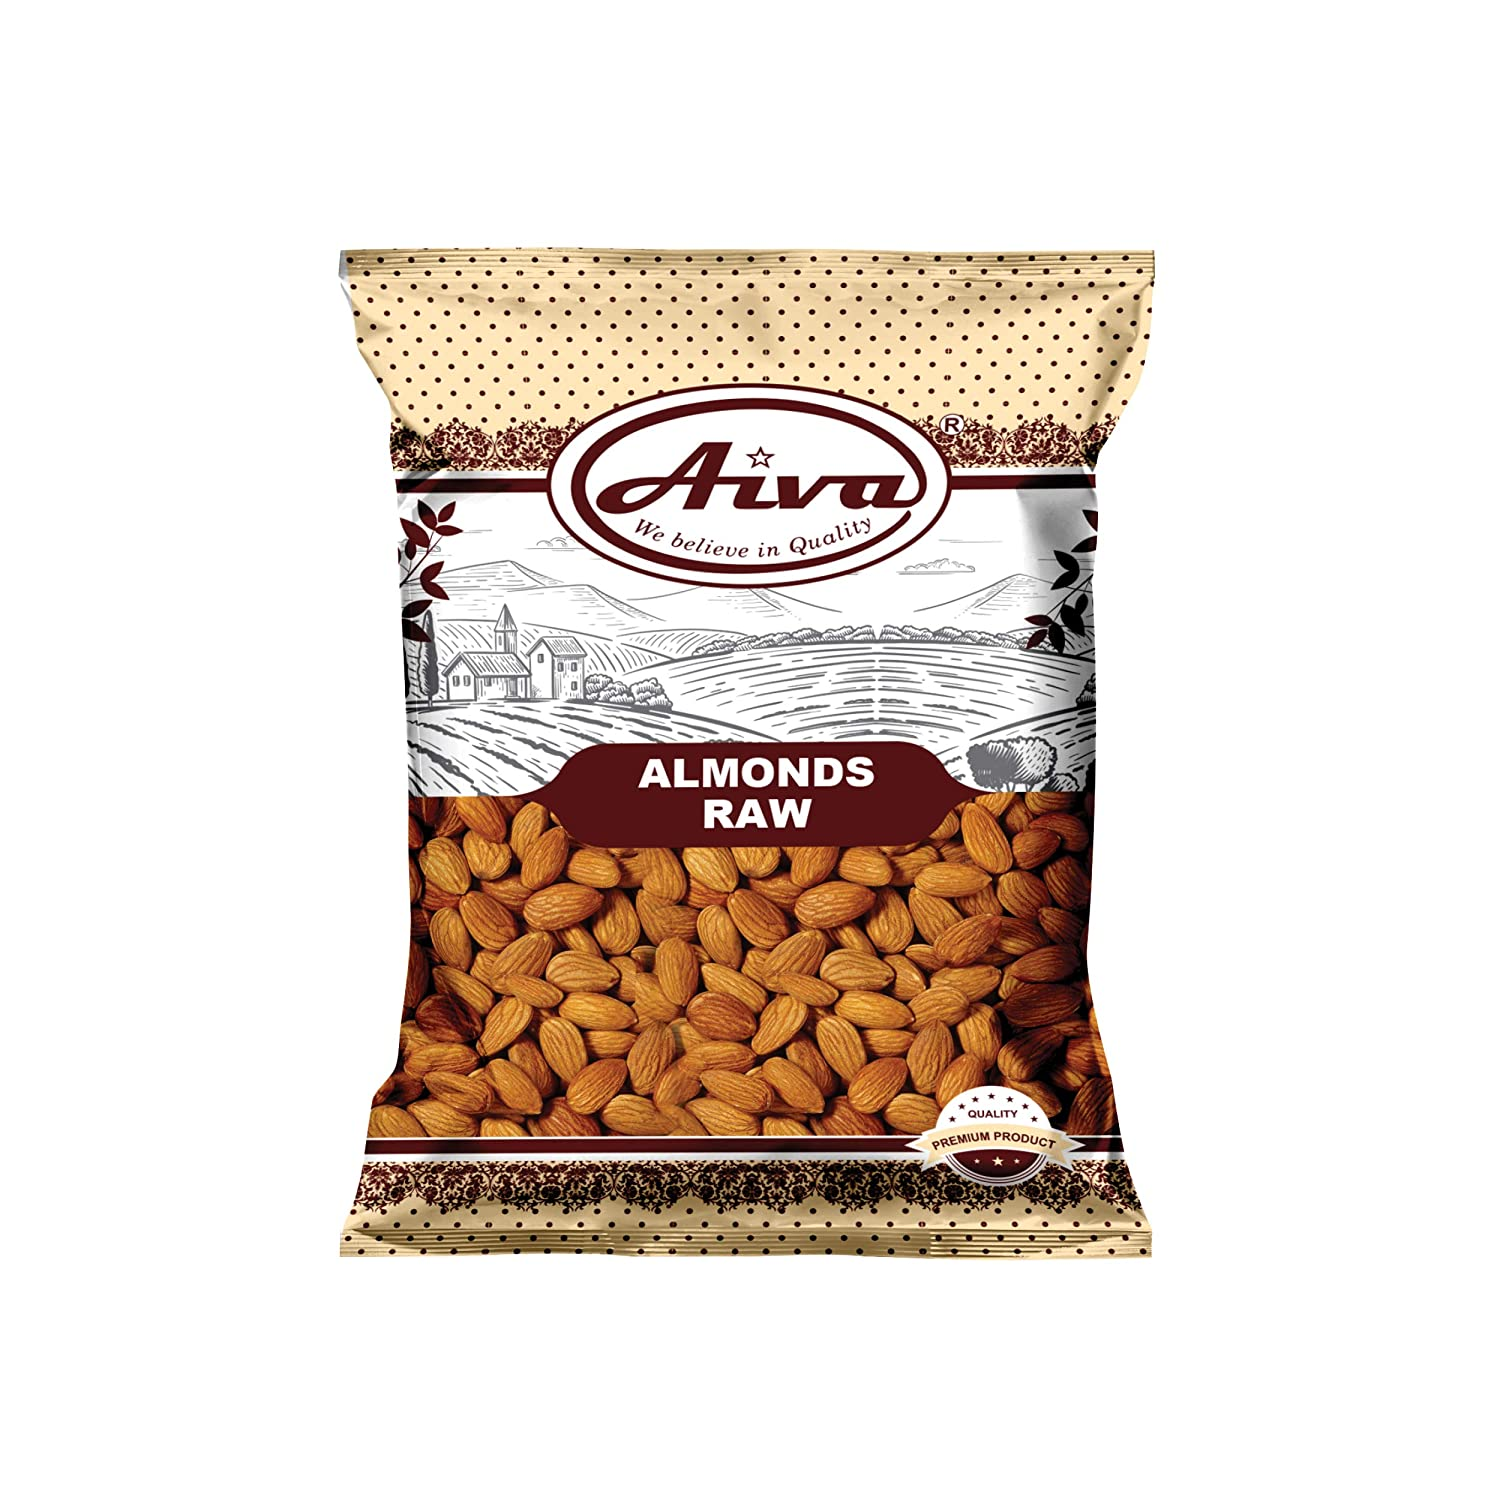 AIVA - Almonds Shelled Raw 10 Packing lbs. 4 years warranty May Vary Bulk lowest price